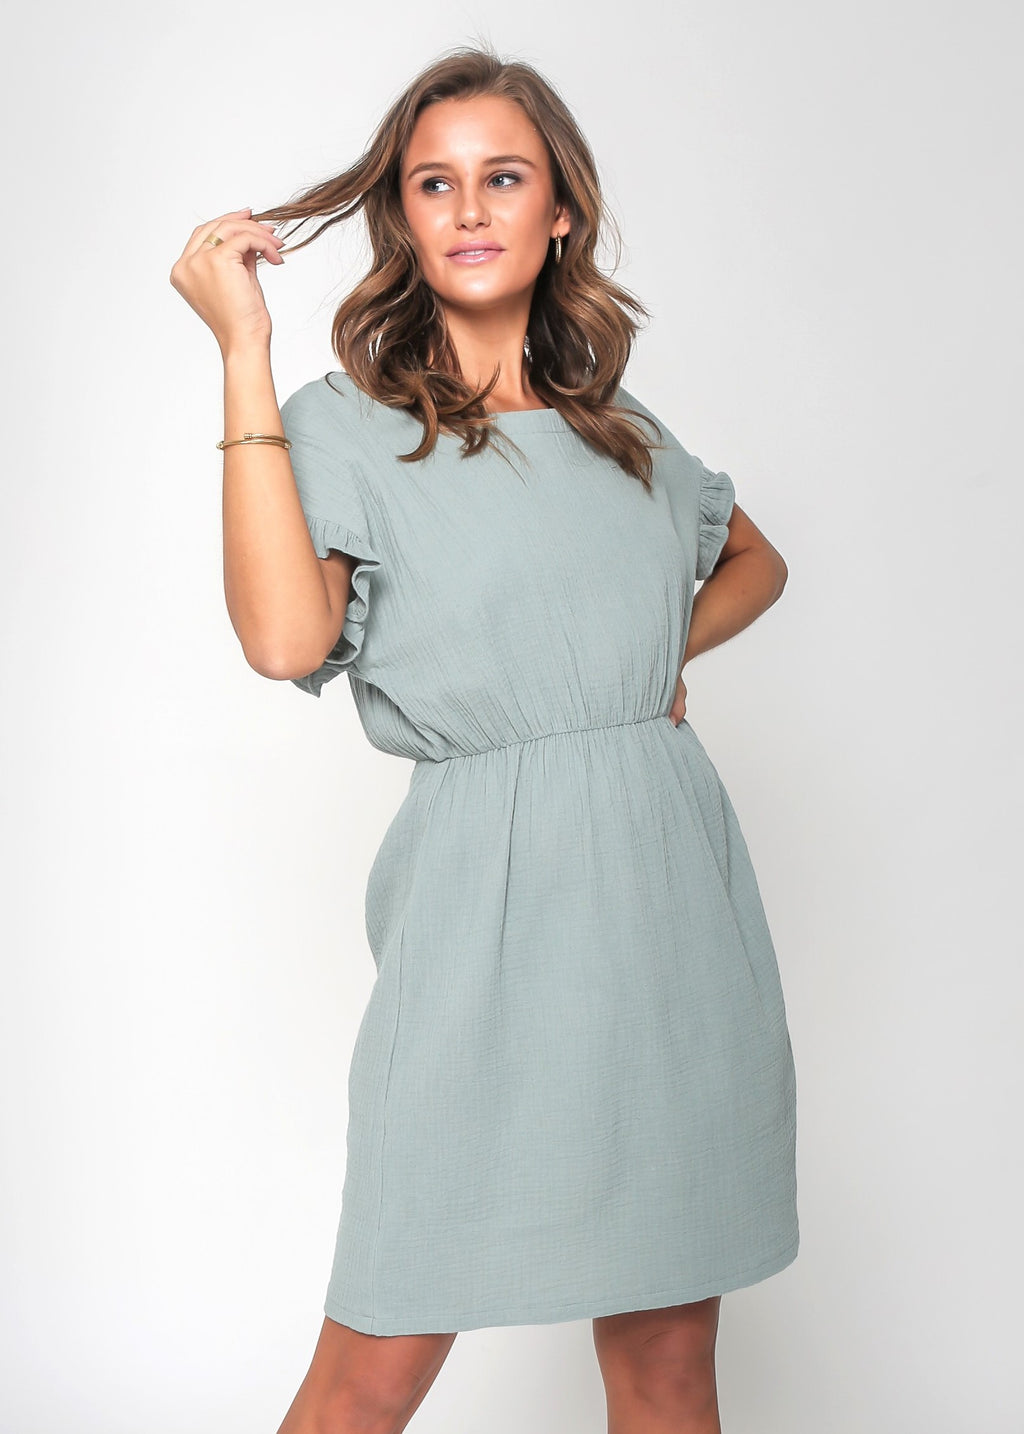 LIZZIE DRESS - SAGE - LAST STOCK